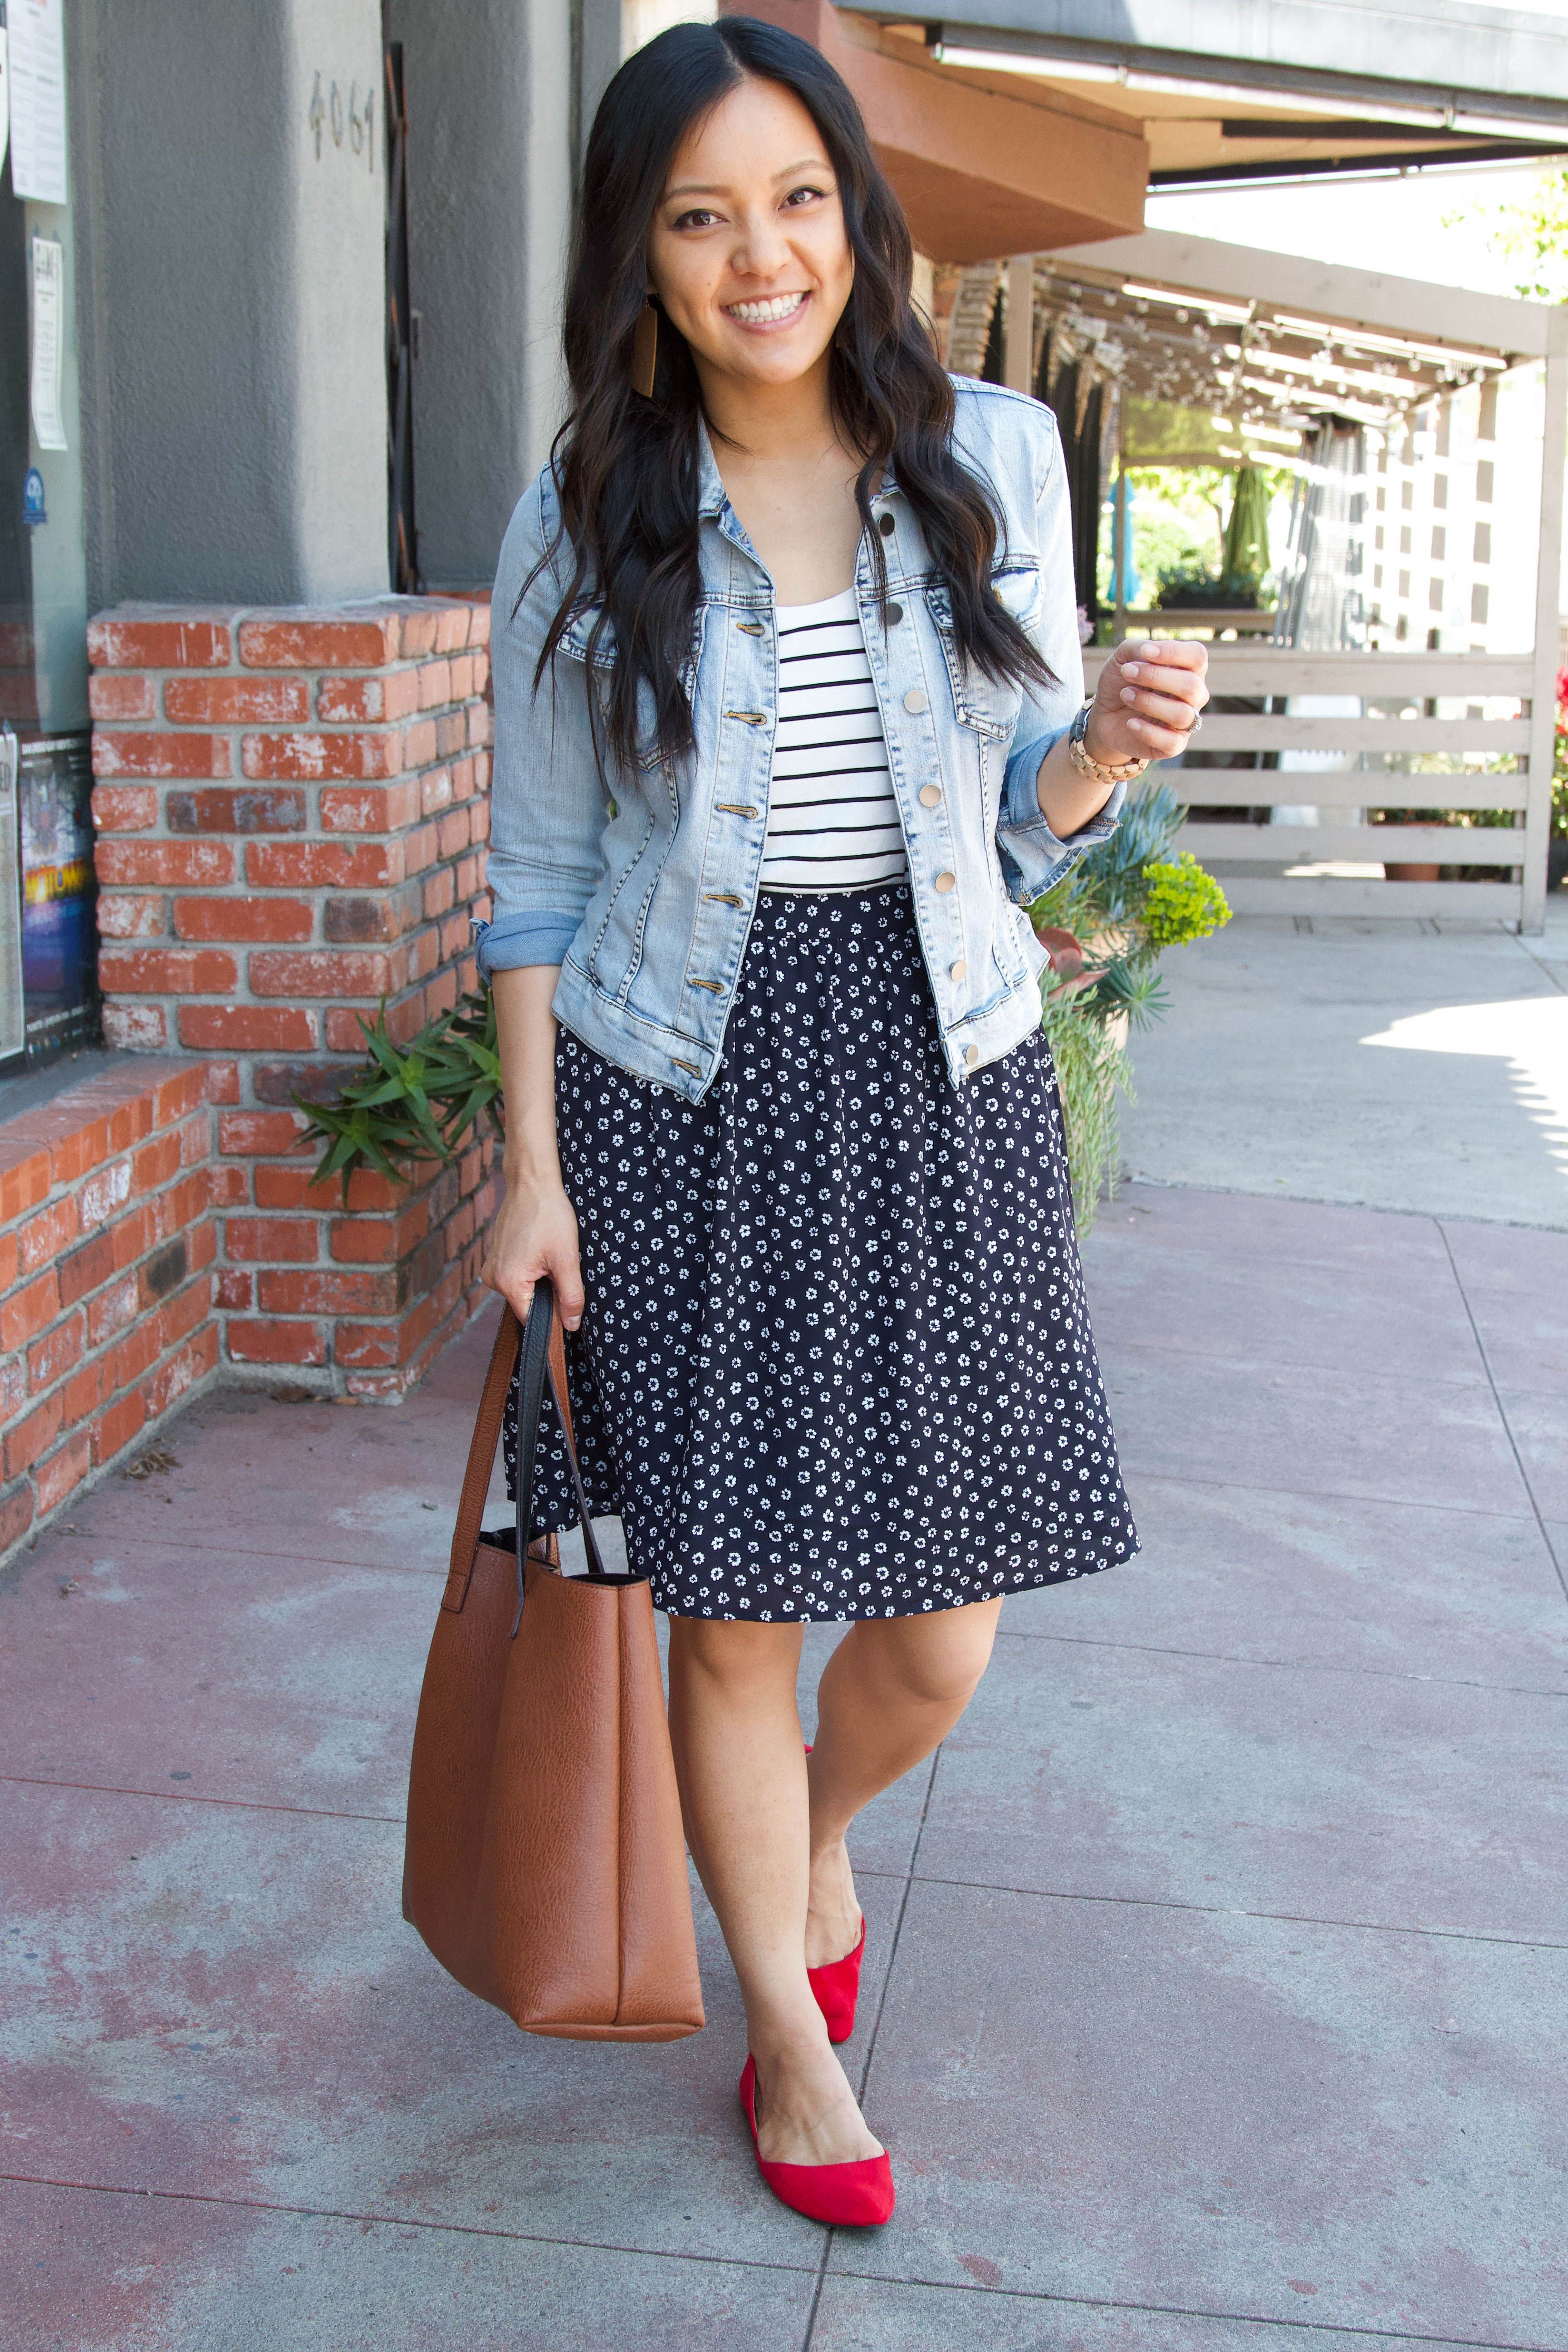 OMG! These are really cute flats skirt, Jean jacket